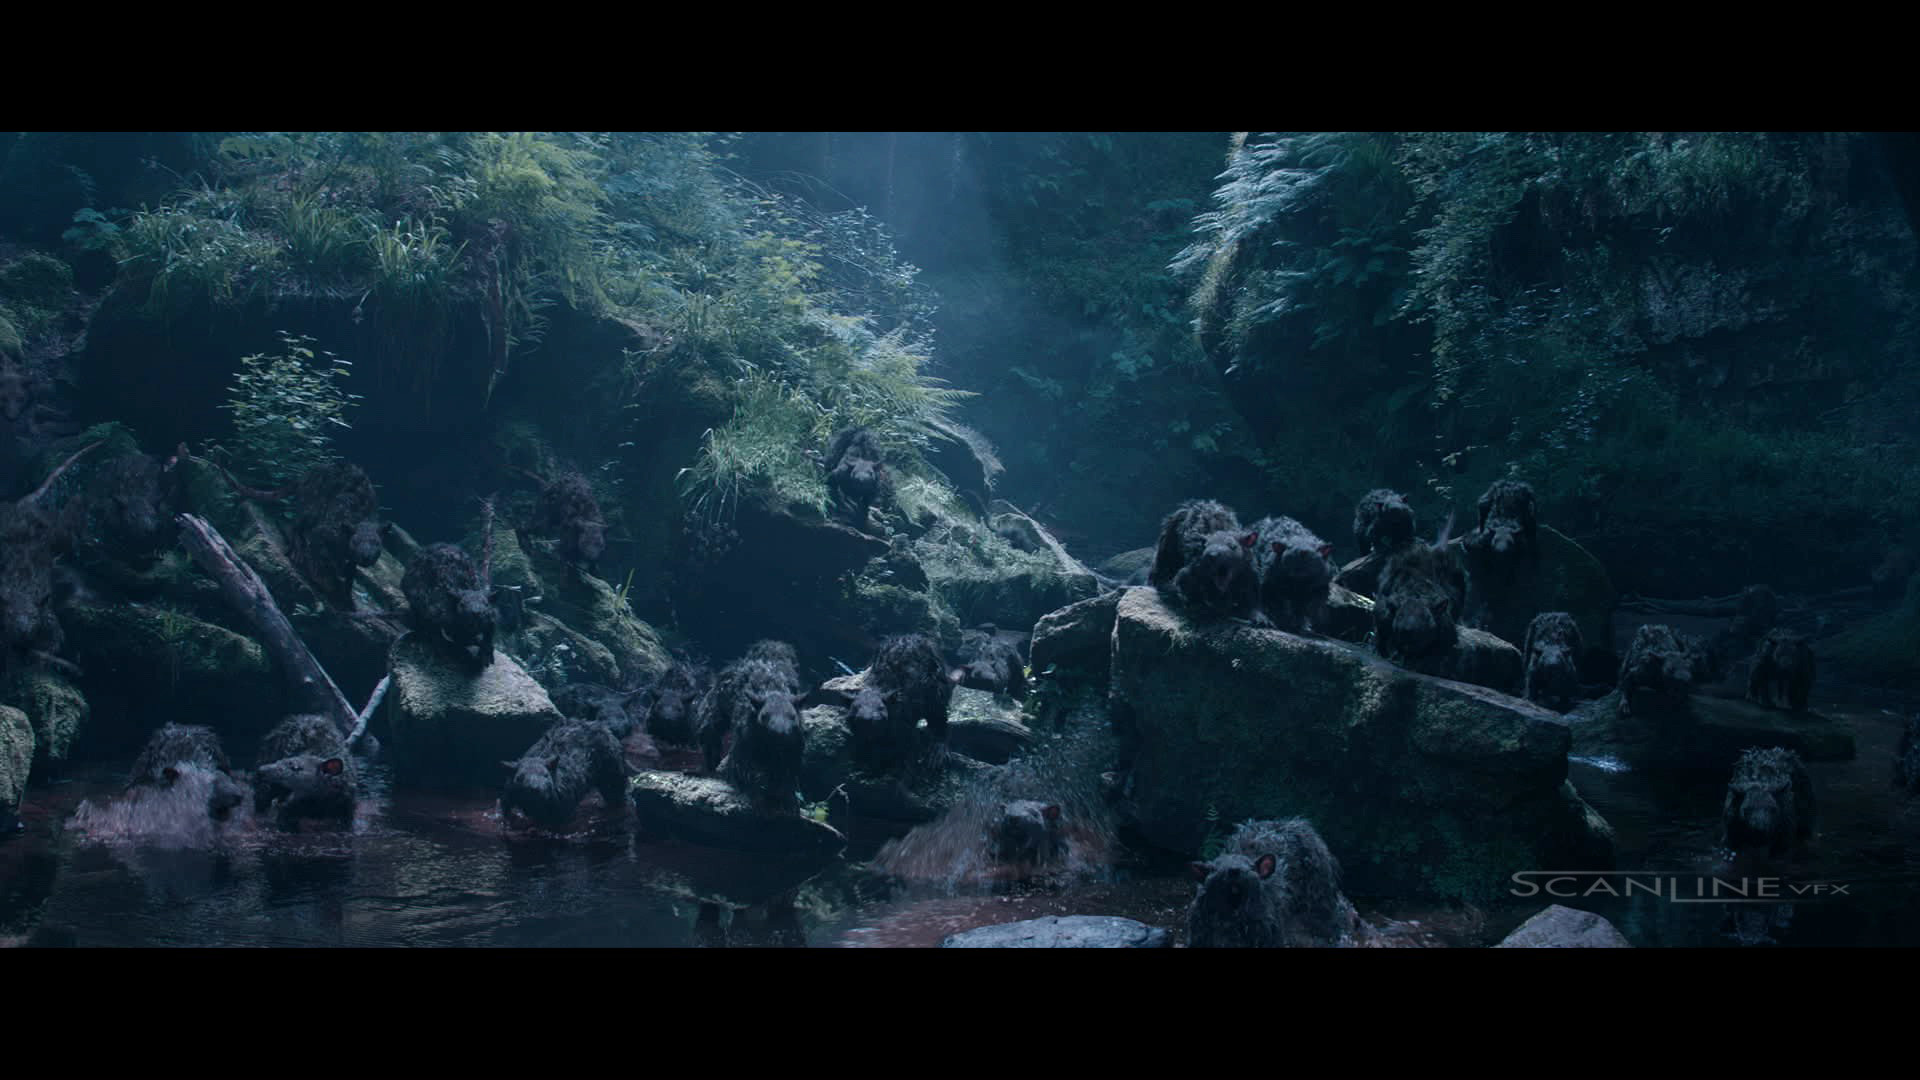 Compositing and integration work  for King Arthur - Legend of the Sword, 2017 - Work done at Scanline VFX with a team of 3D artists.  Software used: Nuke. Full CG Characters, CG Water and Plate Integration